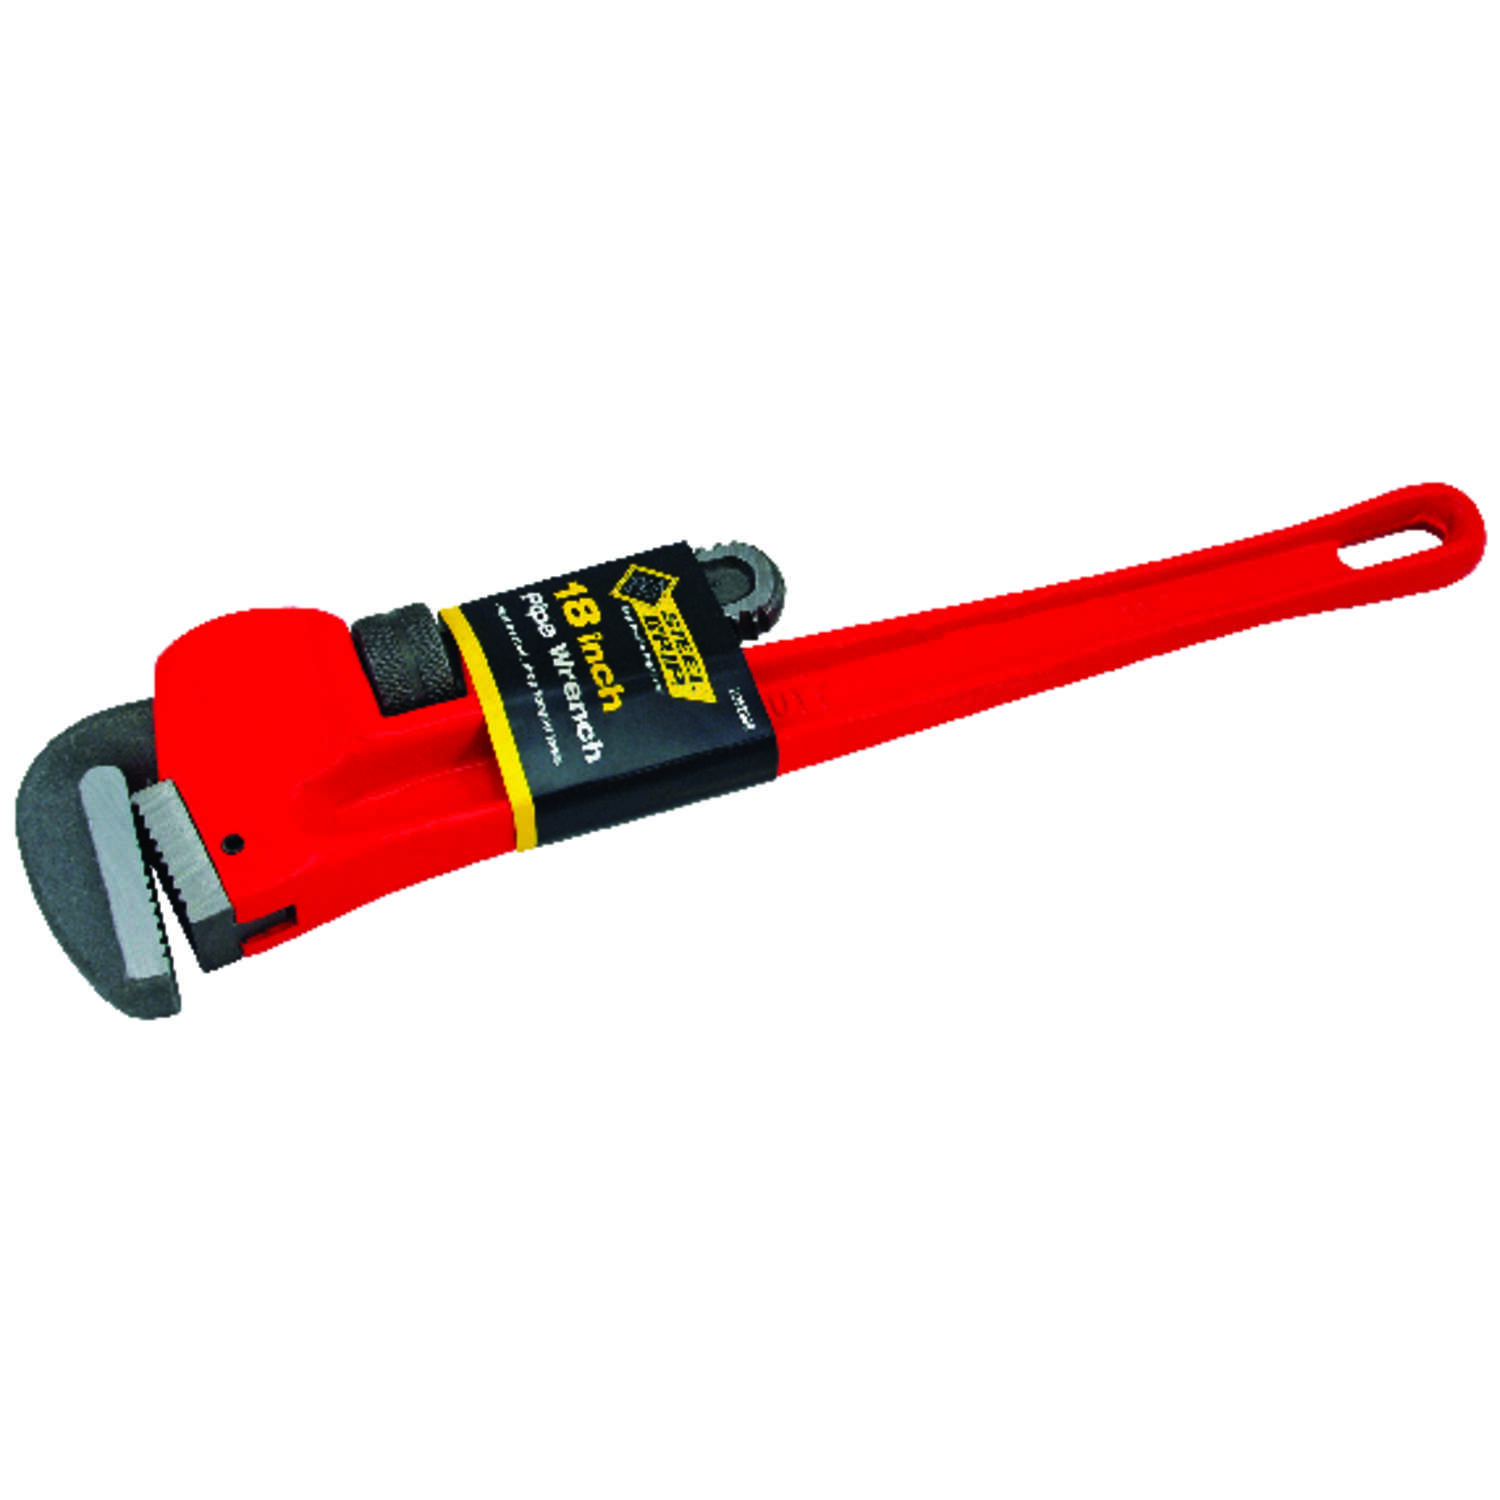 Steel Grip 18 in. L Pipe Wrench 1 pc.